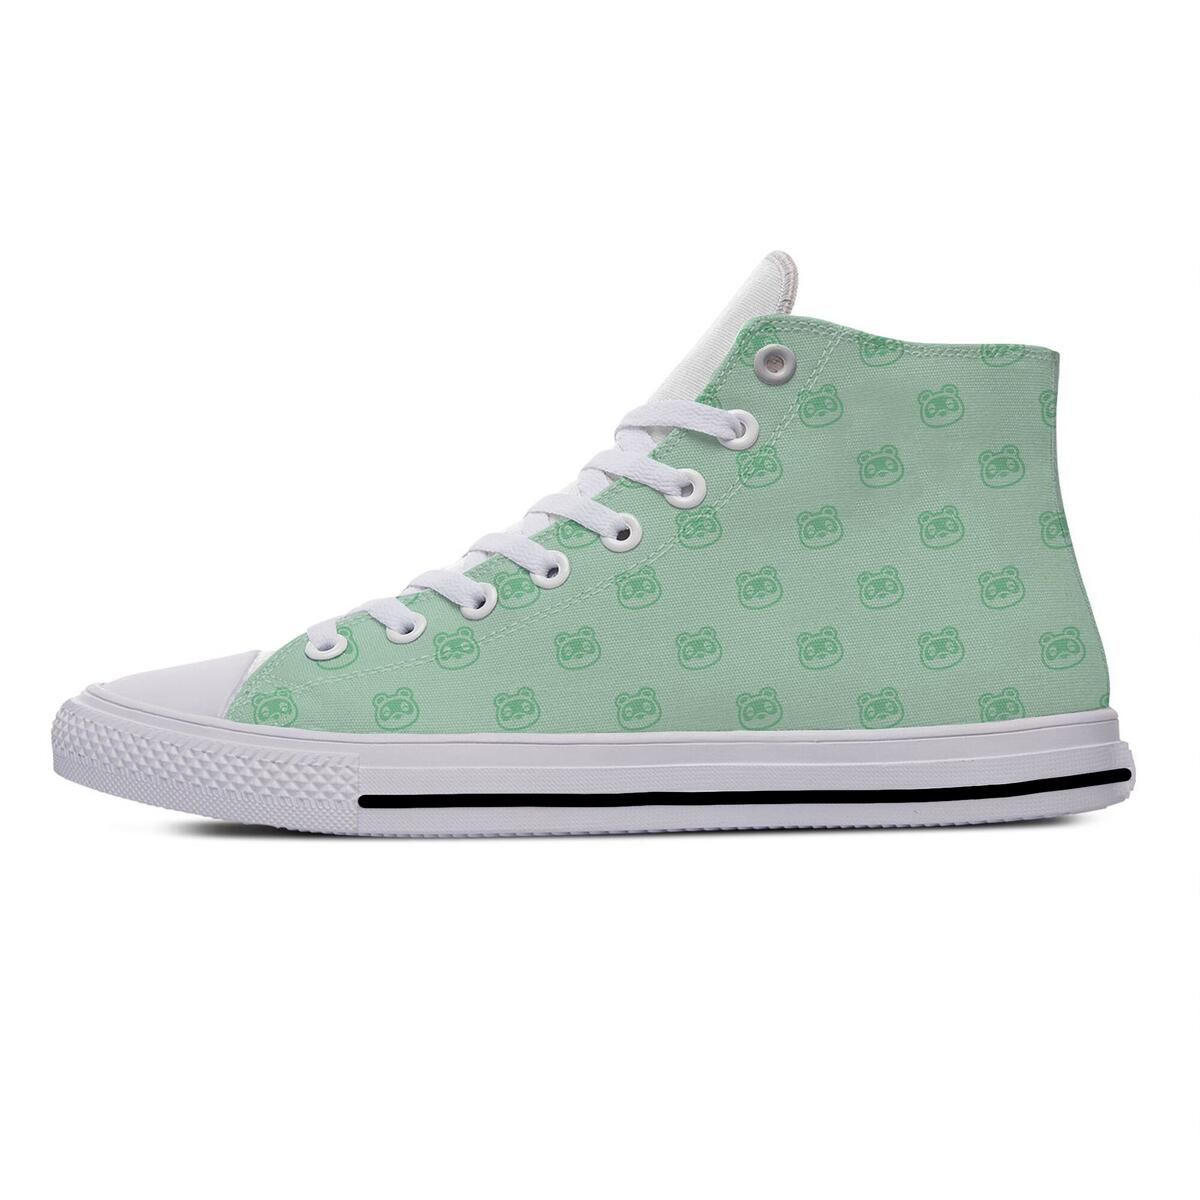 Animal Crossing Canvas Converse Style Shoes, Teal Light Green Leaves / 5